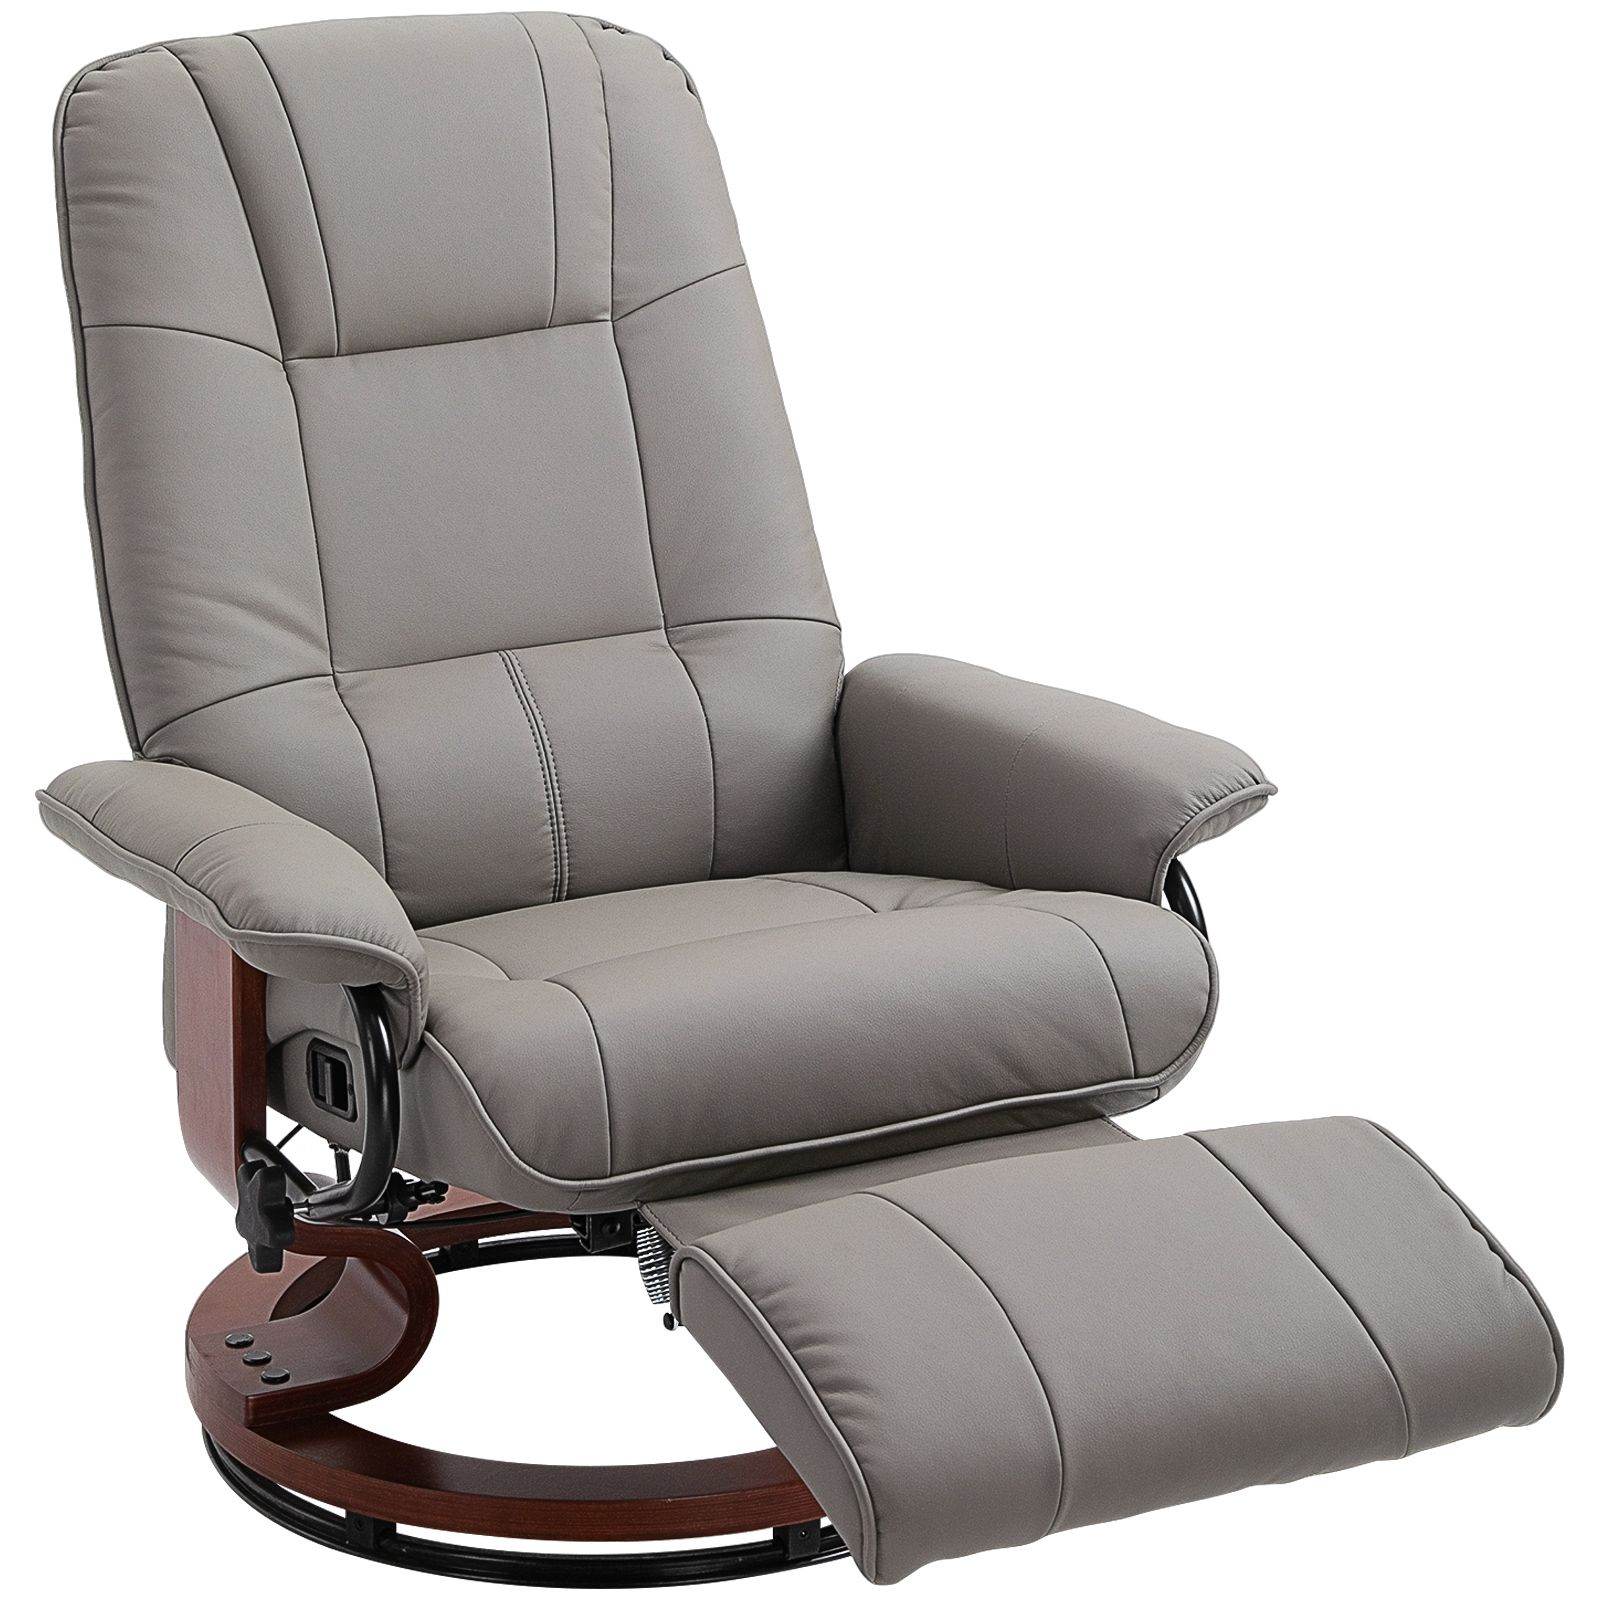 Faux Leather Adjustable Manual Swivel Base Recliner